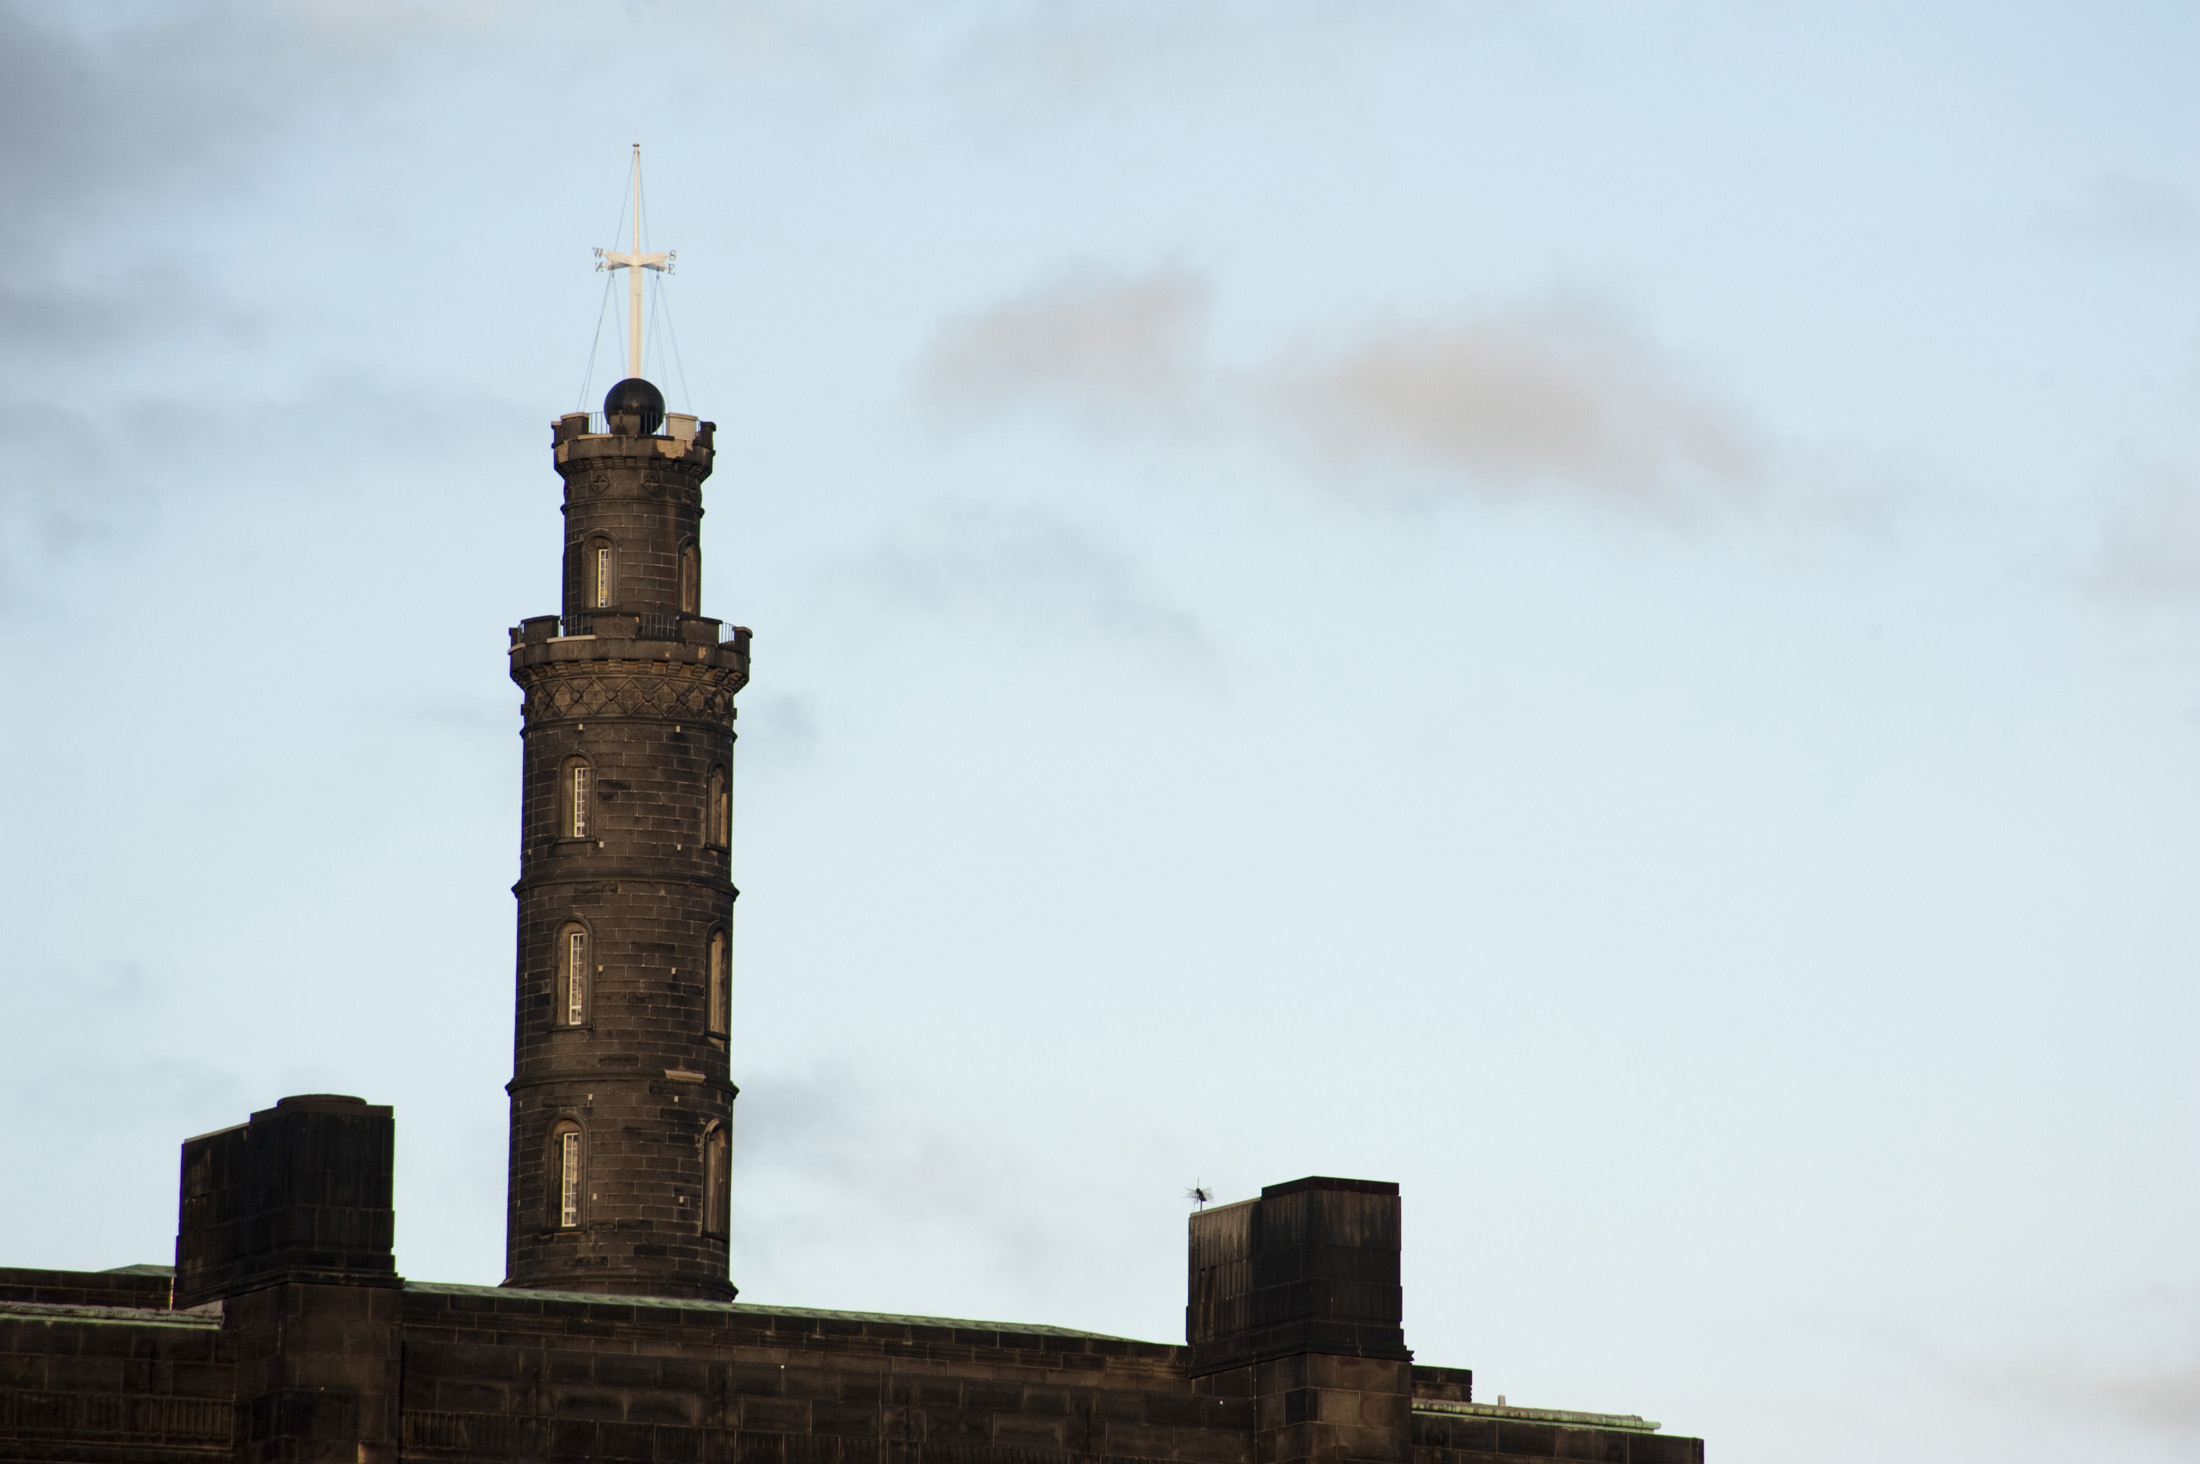 commemorative tower built in honour of Vice Admiral Horatio Nelson, on top of Calton Hill, Edinburgh